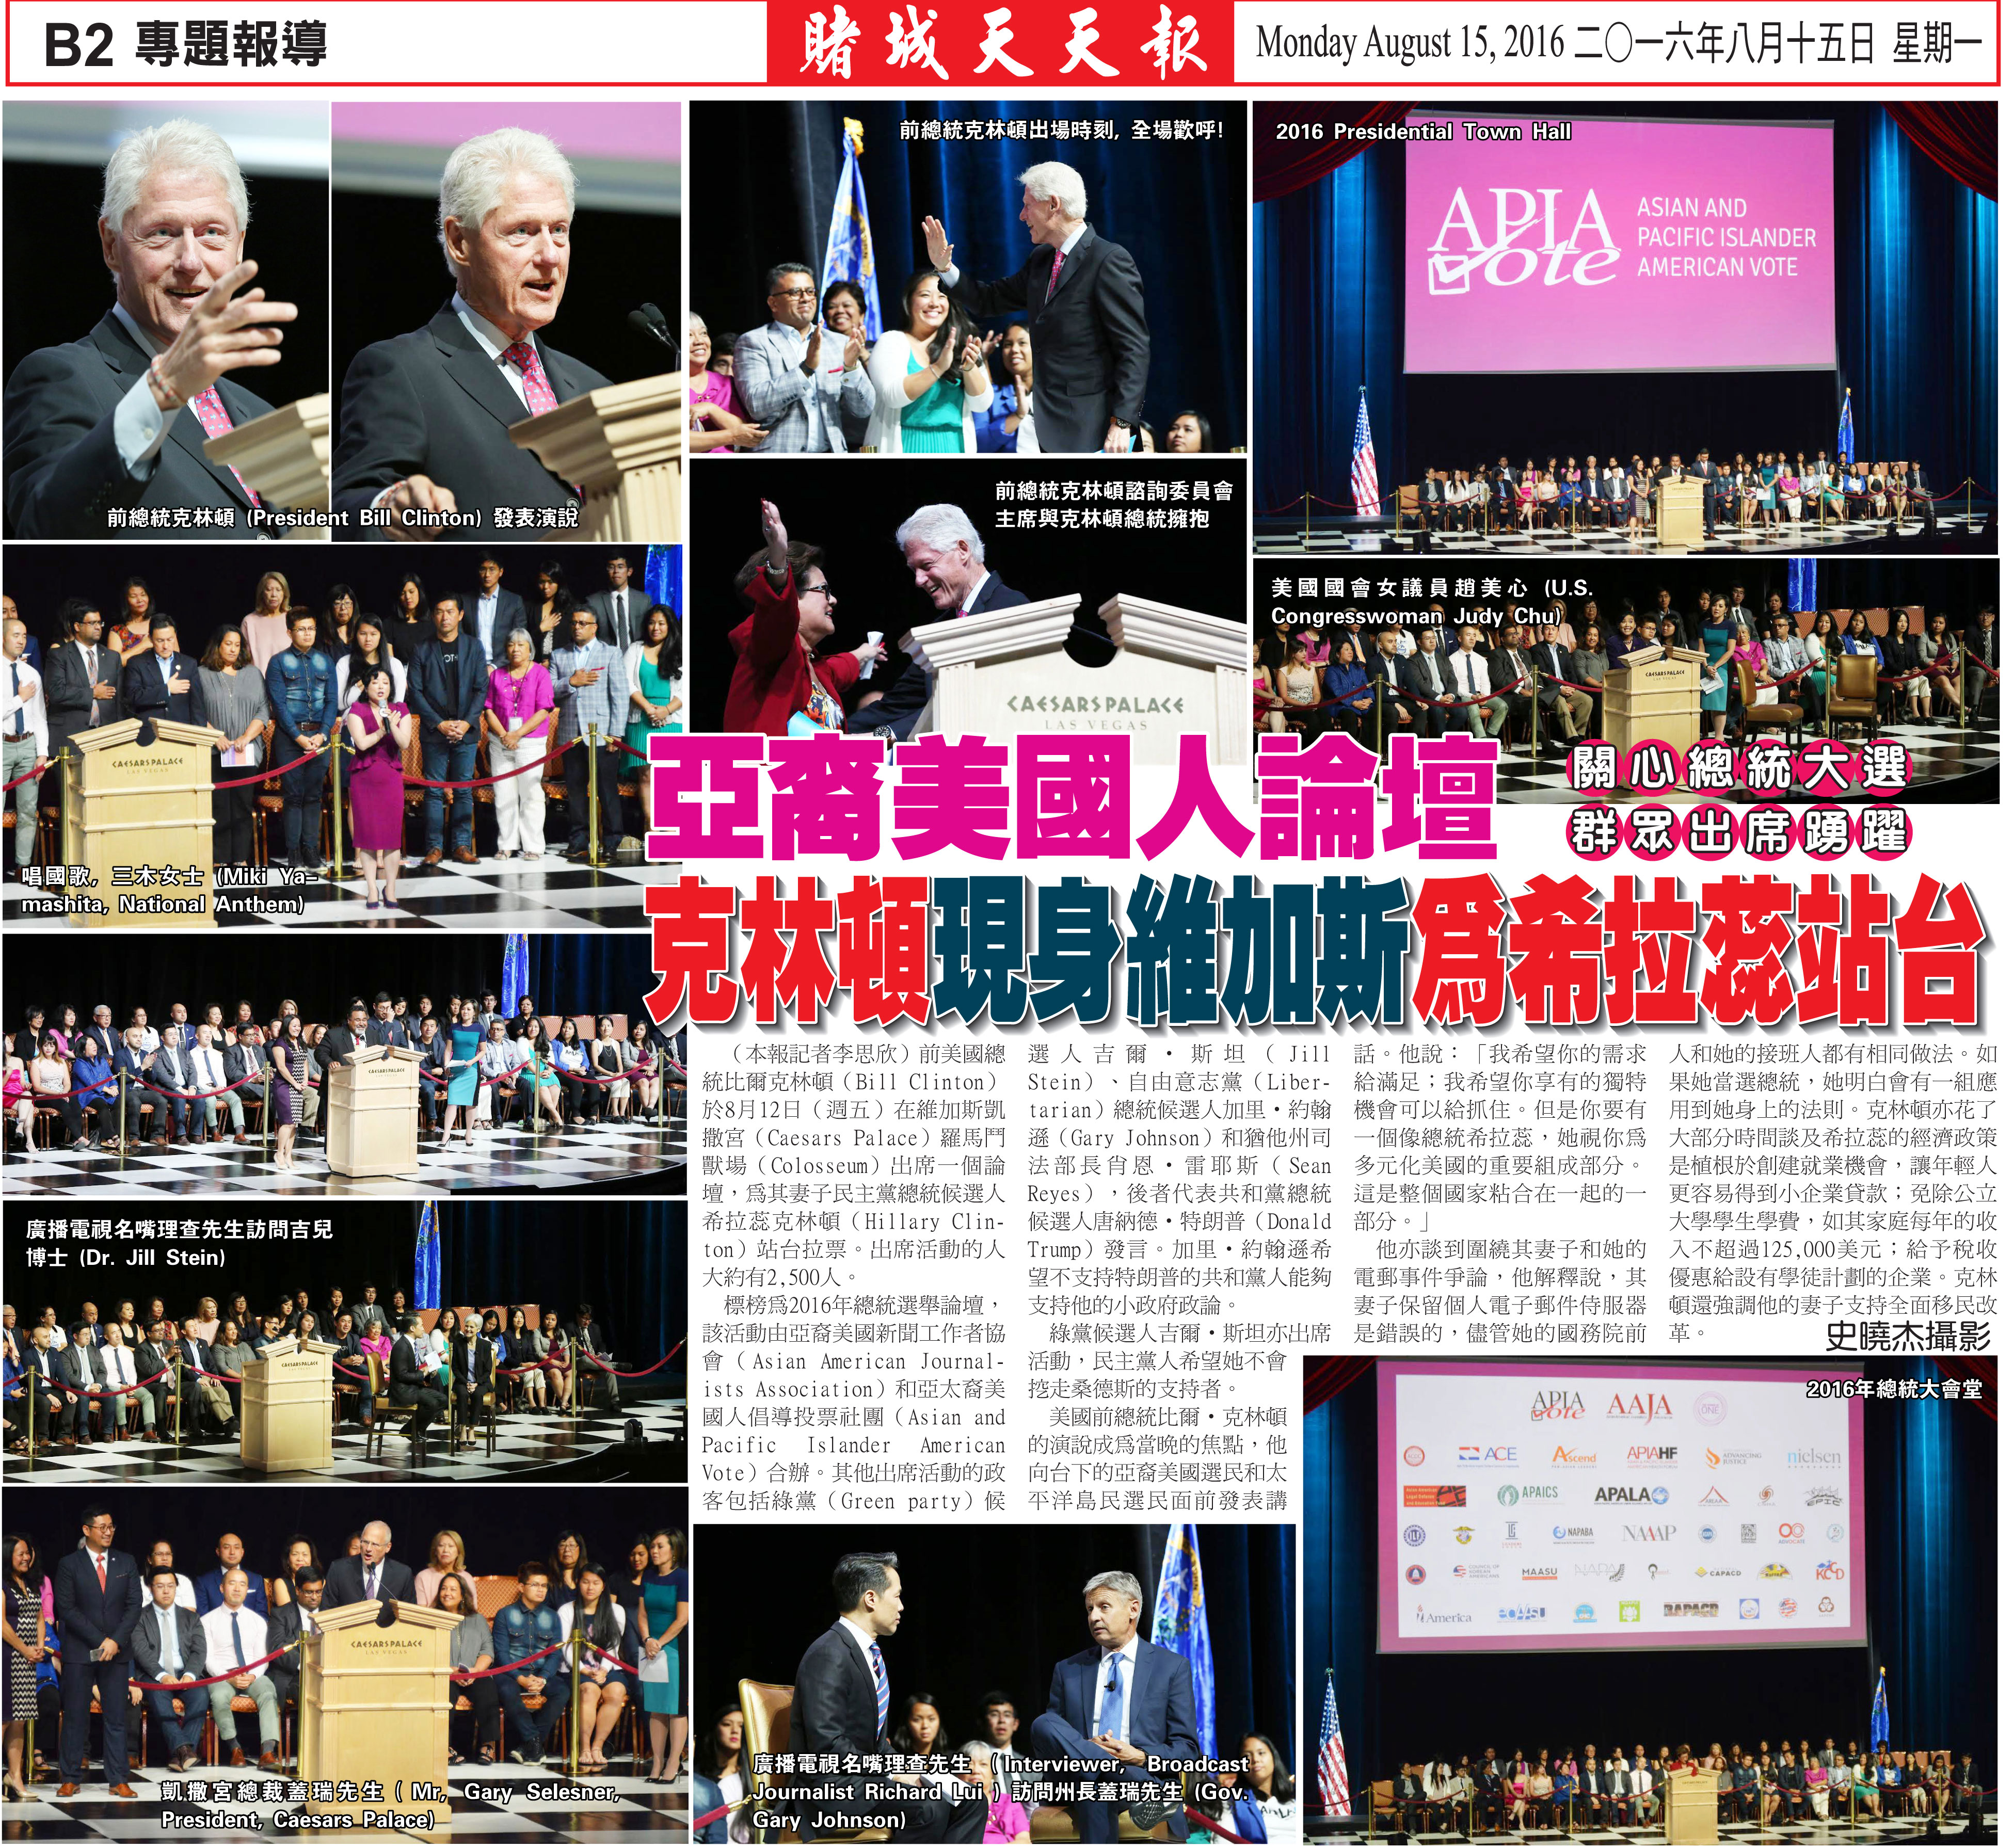 2016-Presidential-Town-Hall-Published-on-0815,-2016-Page-B2